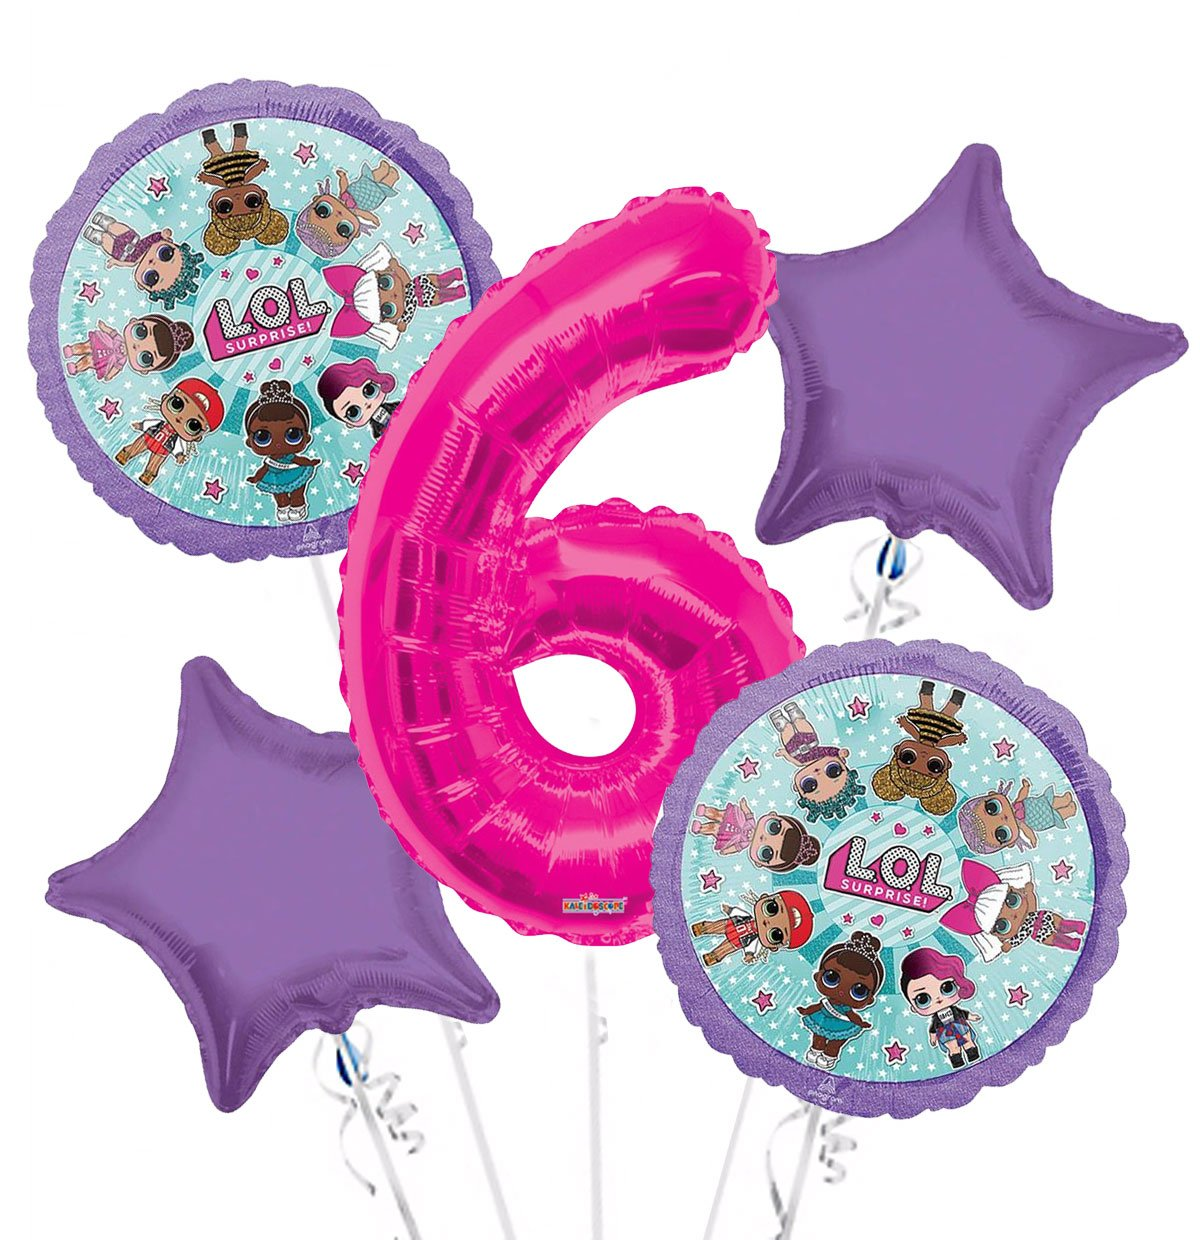 LOL Suprise Balloon Bouquet 6th Birthday 5 pcs - Party Supplies